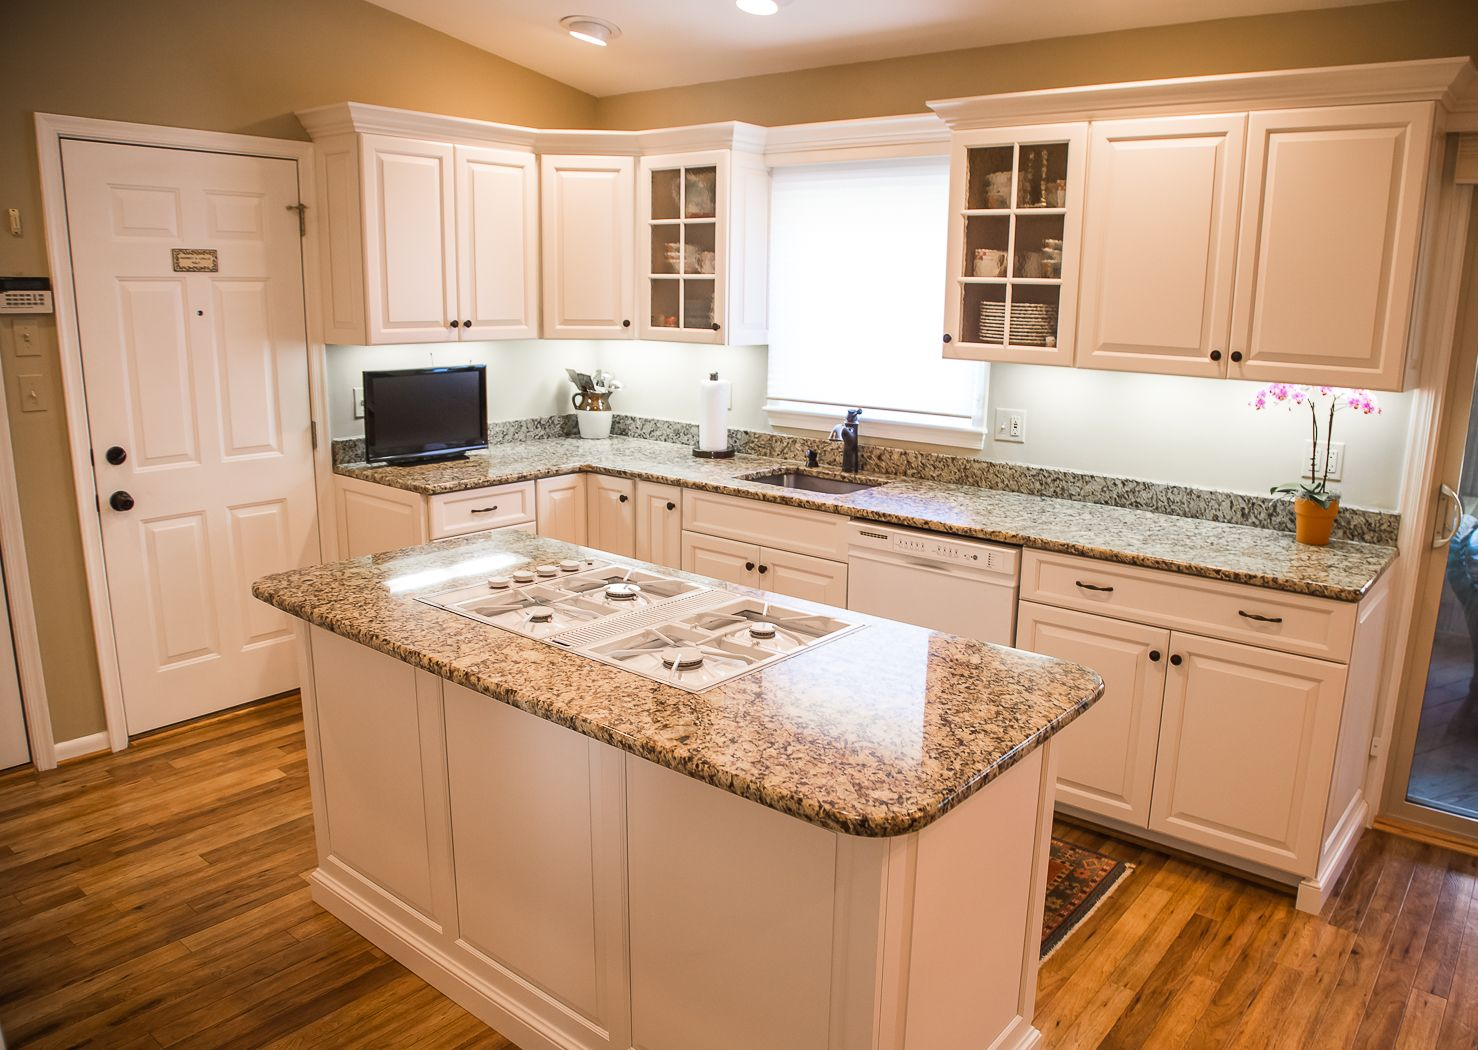 This Kitchen Started Off With Some Structural Renewal Work To A Couple Cabinets Before It Wass Fully Refac Small Kitchen Decor Kitchen Cabinet Remodel Kitchen